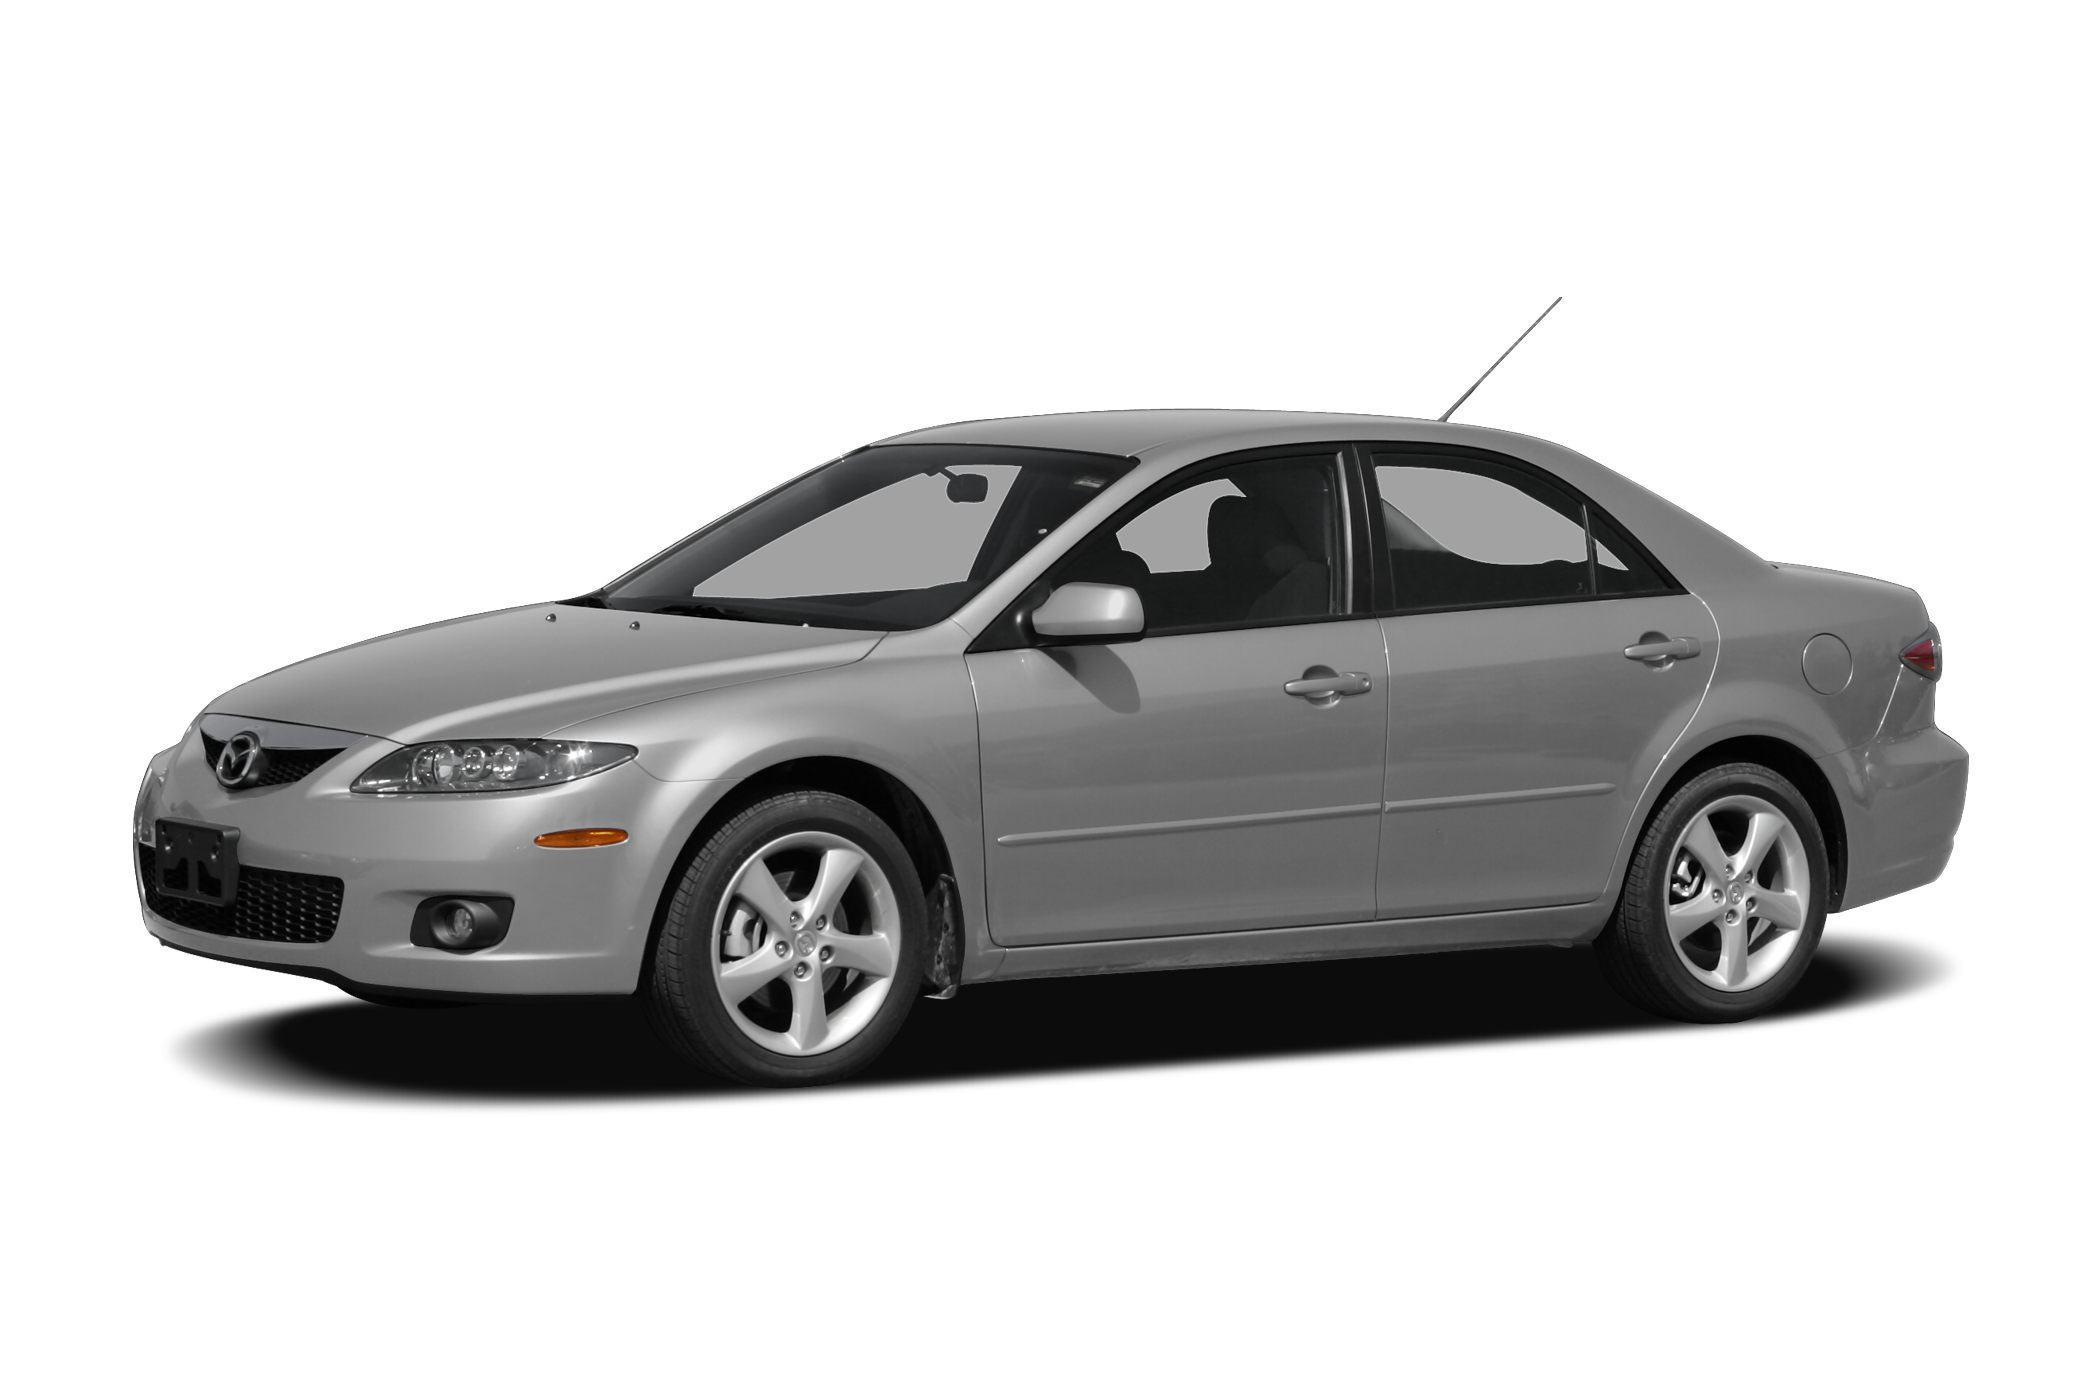 2008 Mazda Mazda6 ISport VE Sedan for sale in Owensboro for $8,445 with 94,239 miles